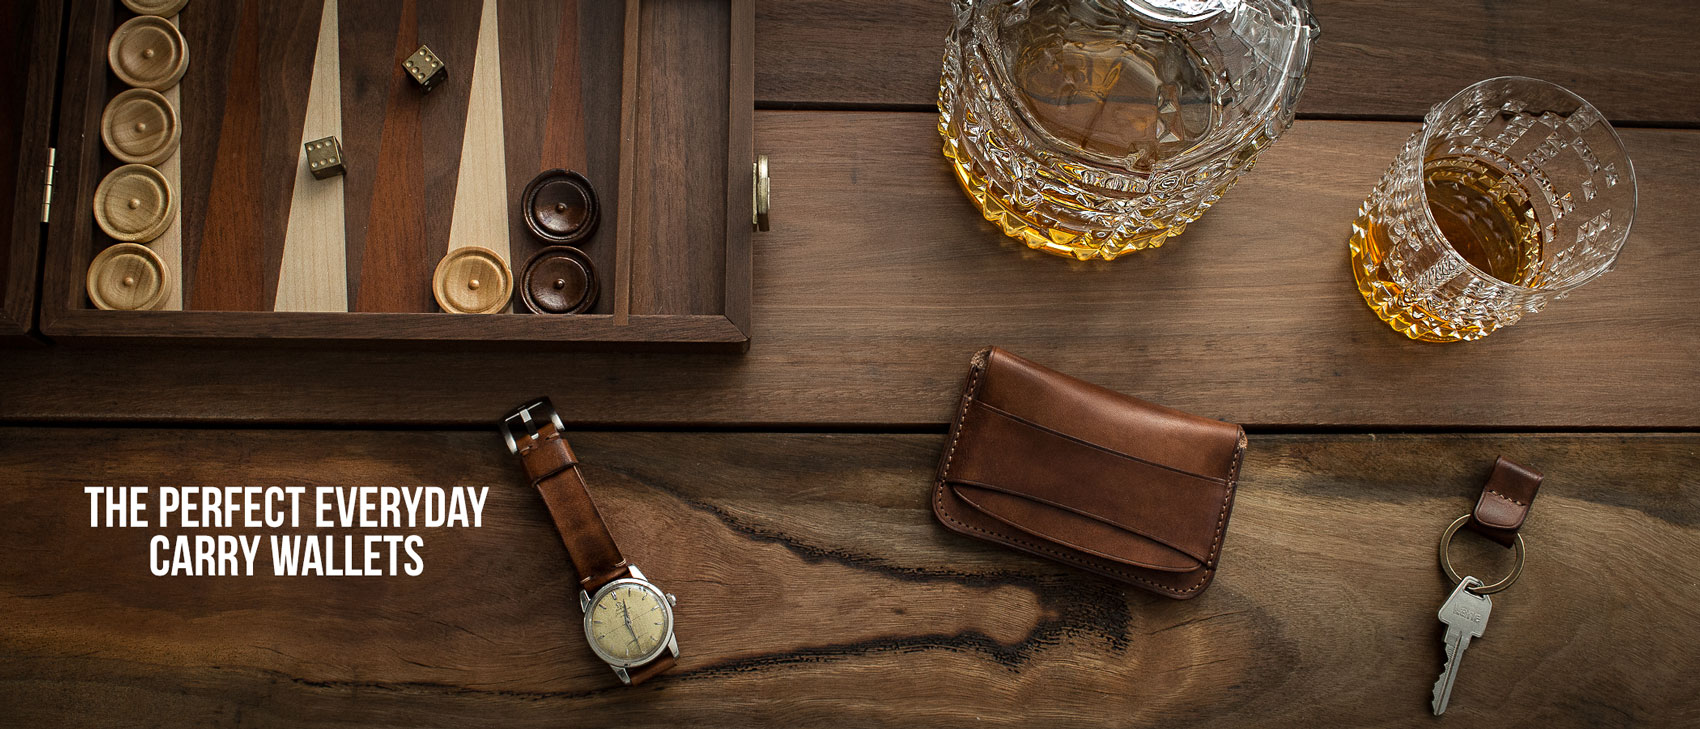 The Perfect Everyday Carry Wallets